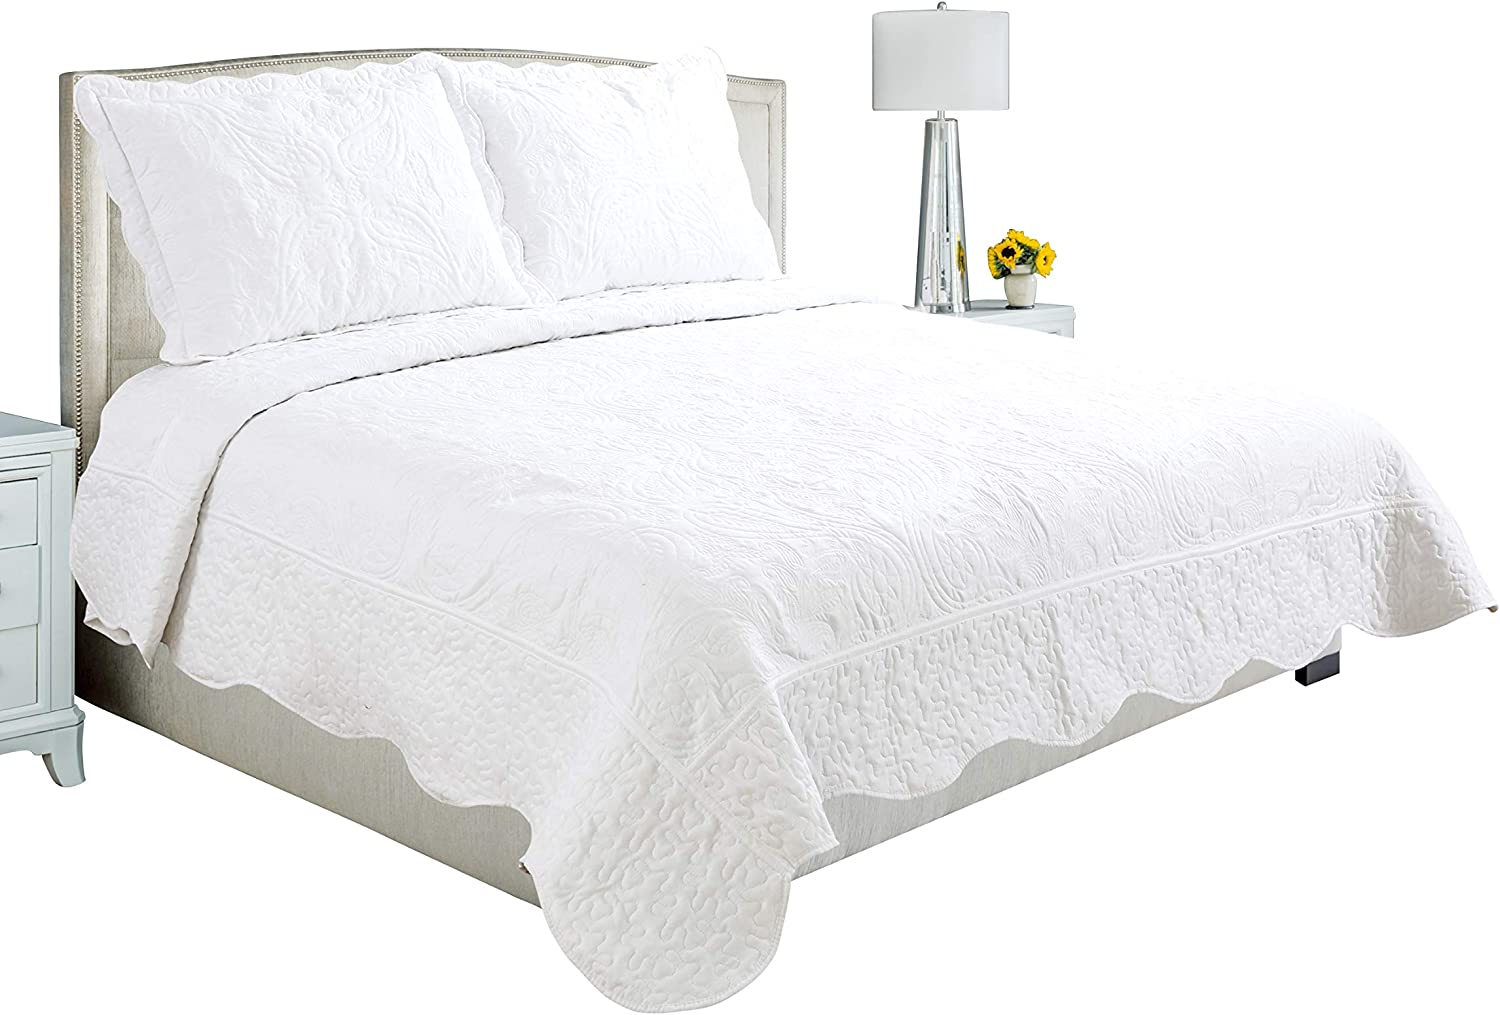 Beauty Sleep Bedding Luxury Embroidered Reversible 3 Pieces Quilt Set with 2 Quillted Shams, White Color, California King Size